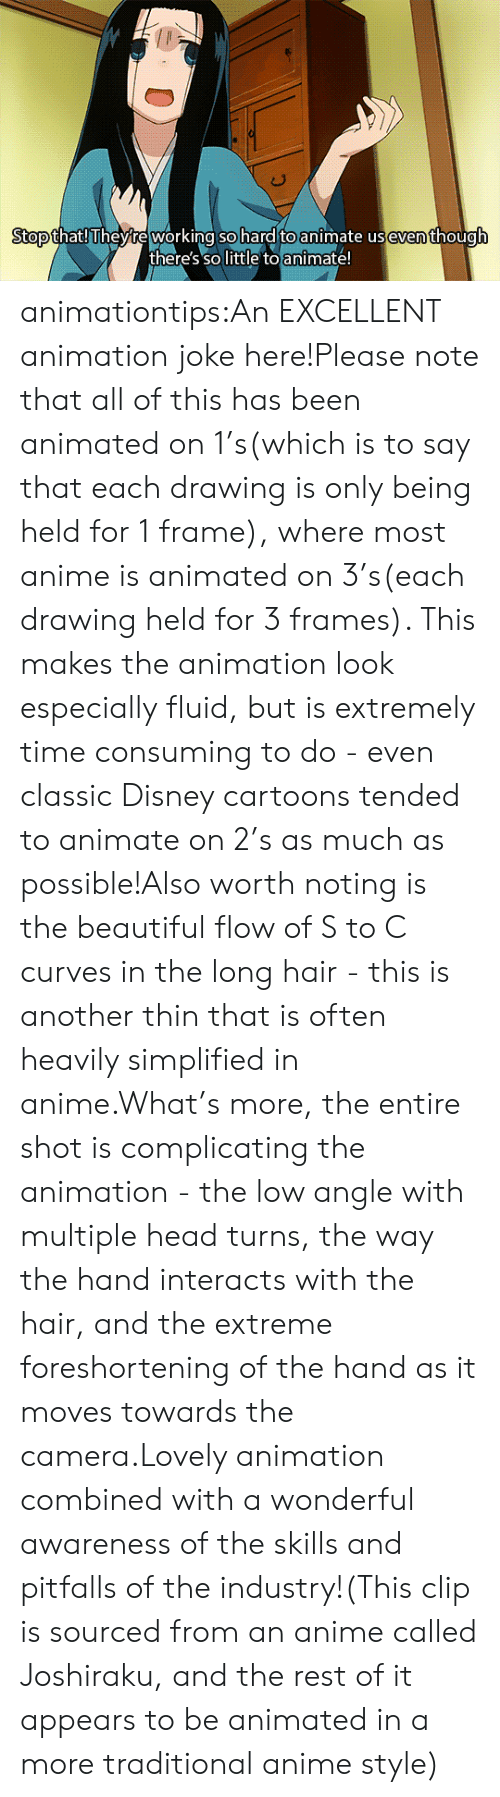 Anime, Beautiful, and Disney: Stopthat! l heyre working so hard to animate useventhough  there's so little toanimate! animationtips:An EXCELLENT animation joke here!Please note that all of this has been animated on 1's(which is to say that each drawing is only being held for 1 frame), where most anime is animated on 3's(each drawing held for 3 frames). This makes the animation look especially fluid, but is extremely time consuming to do - even classic Disney cartoons tended to animate on 2's as much as possible!Also worth noting is the beautiful flow of S to C curves in the long hair - this is another thin that is often heavily simplified in anime.What's more, the entire shot is complicating the animation - the low angle with multiple head turns, the way the hand interacts with the hair, and the extreme foreshortening of the hand as it moves towards the camera.Lovely animation combined with a wonderful awareness of the skills and pitfalls of the industry!(This clip is sourced from an anime called Joshiraku, and the rest of it appears to be animated in a more traditional anime style)